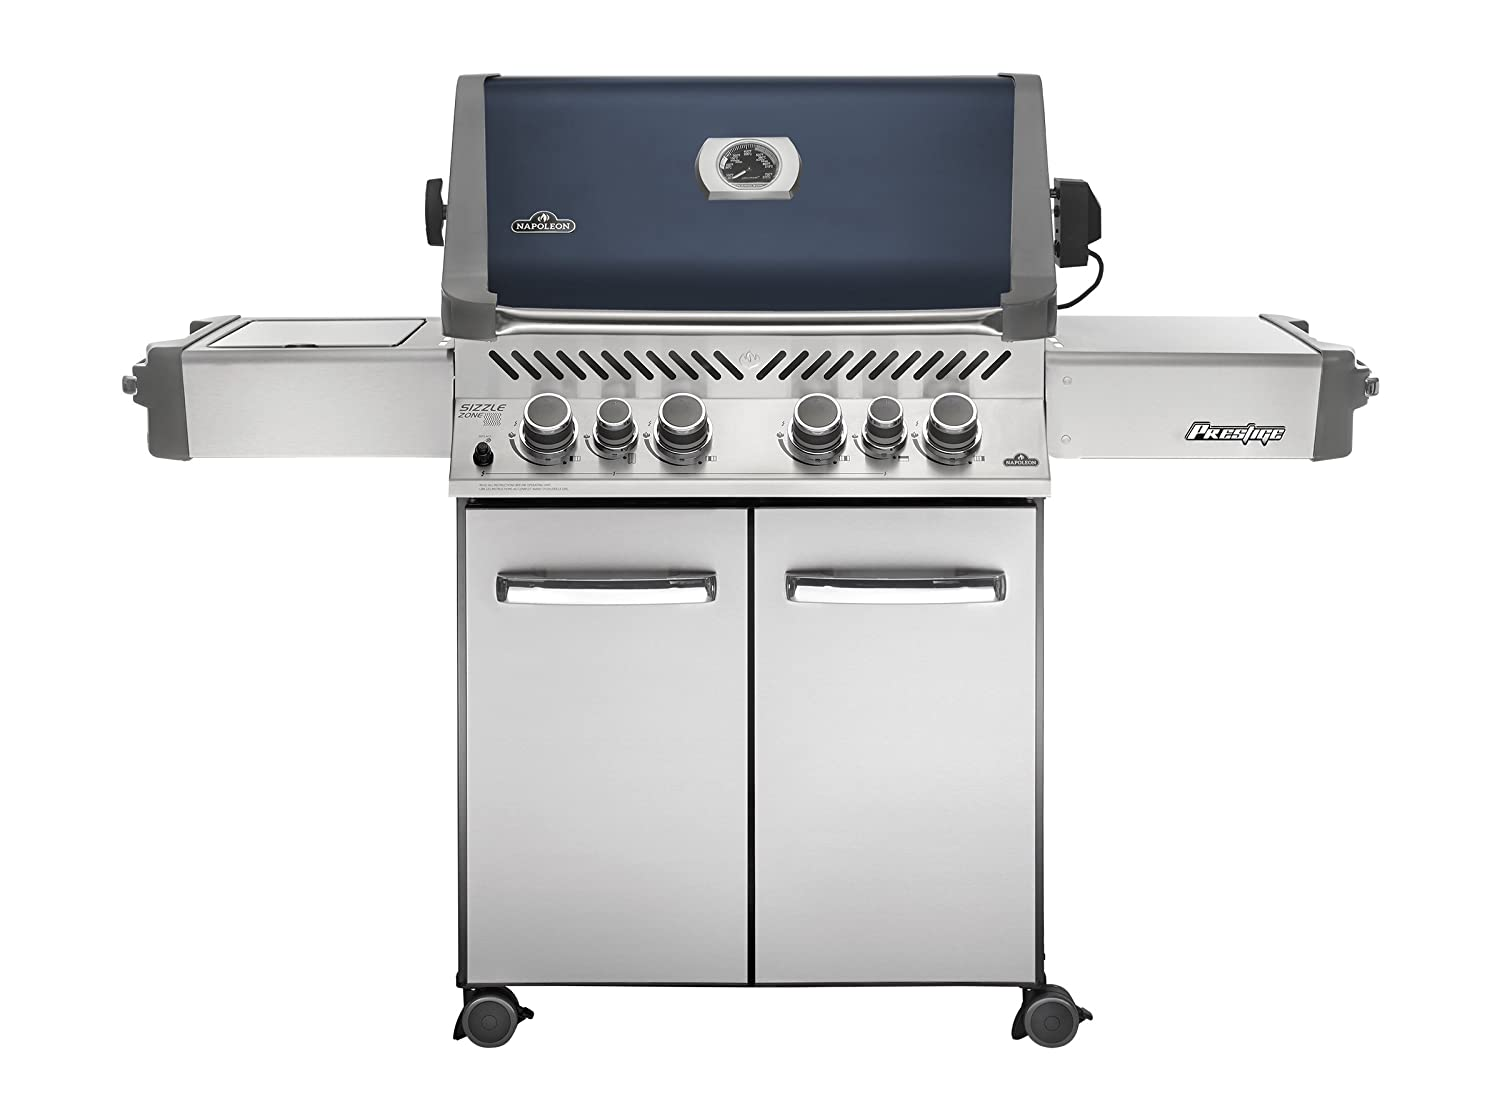 Napoleon P500RSIBPSS-1 Prestige Propane Gas Grill with Infrared Side and Rear Burners in Stainless Steel